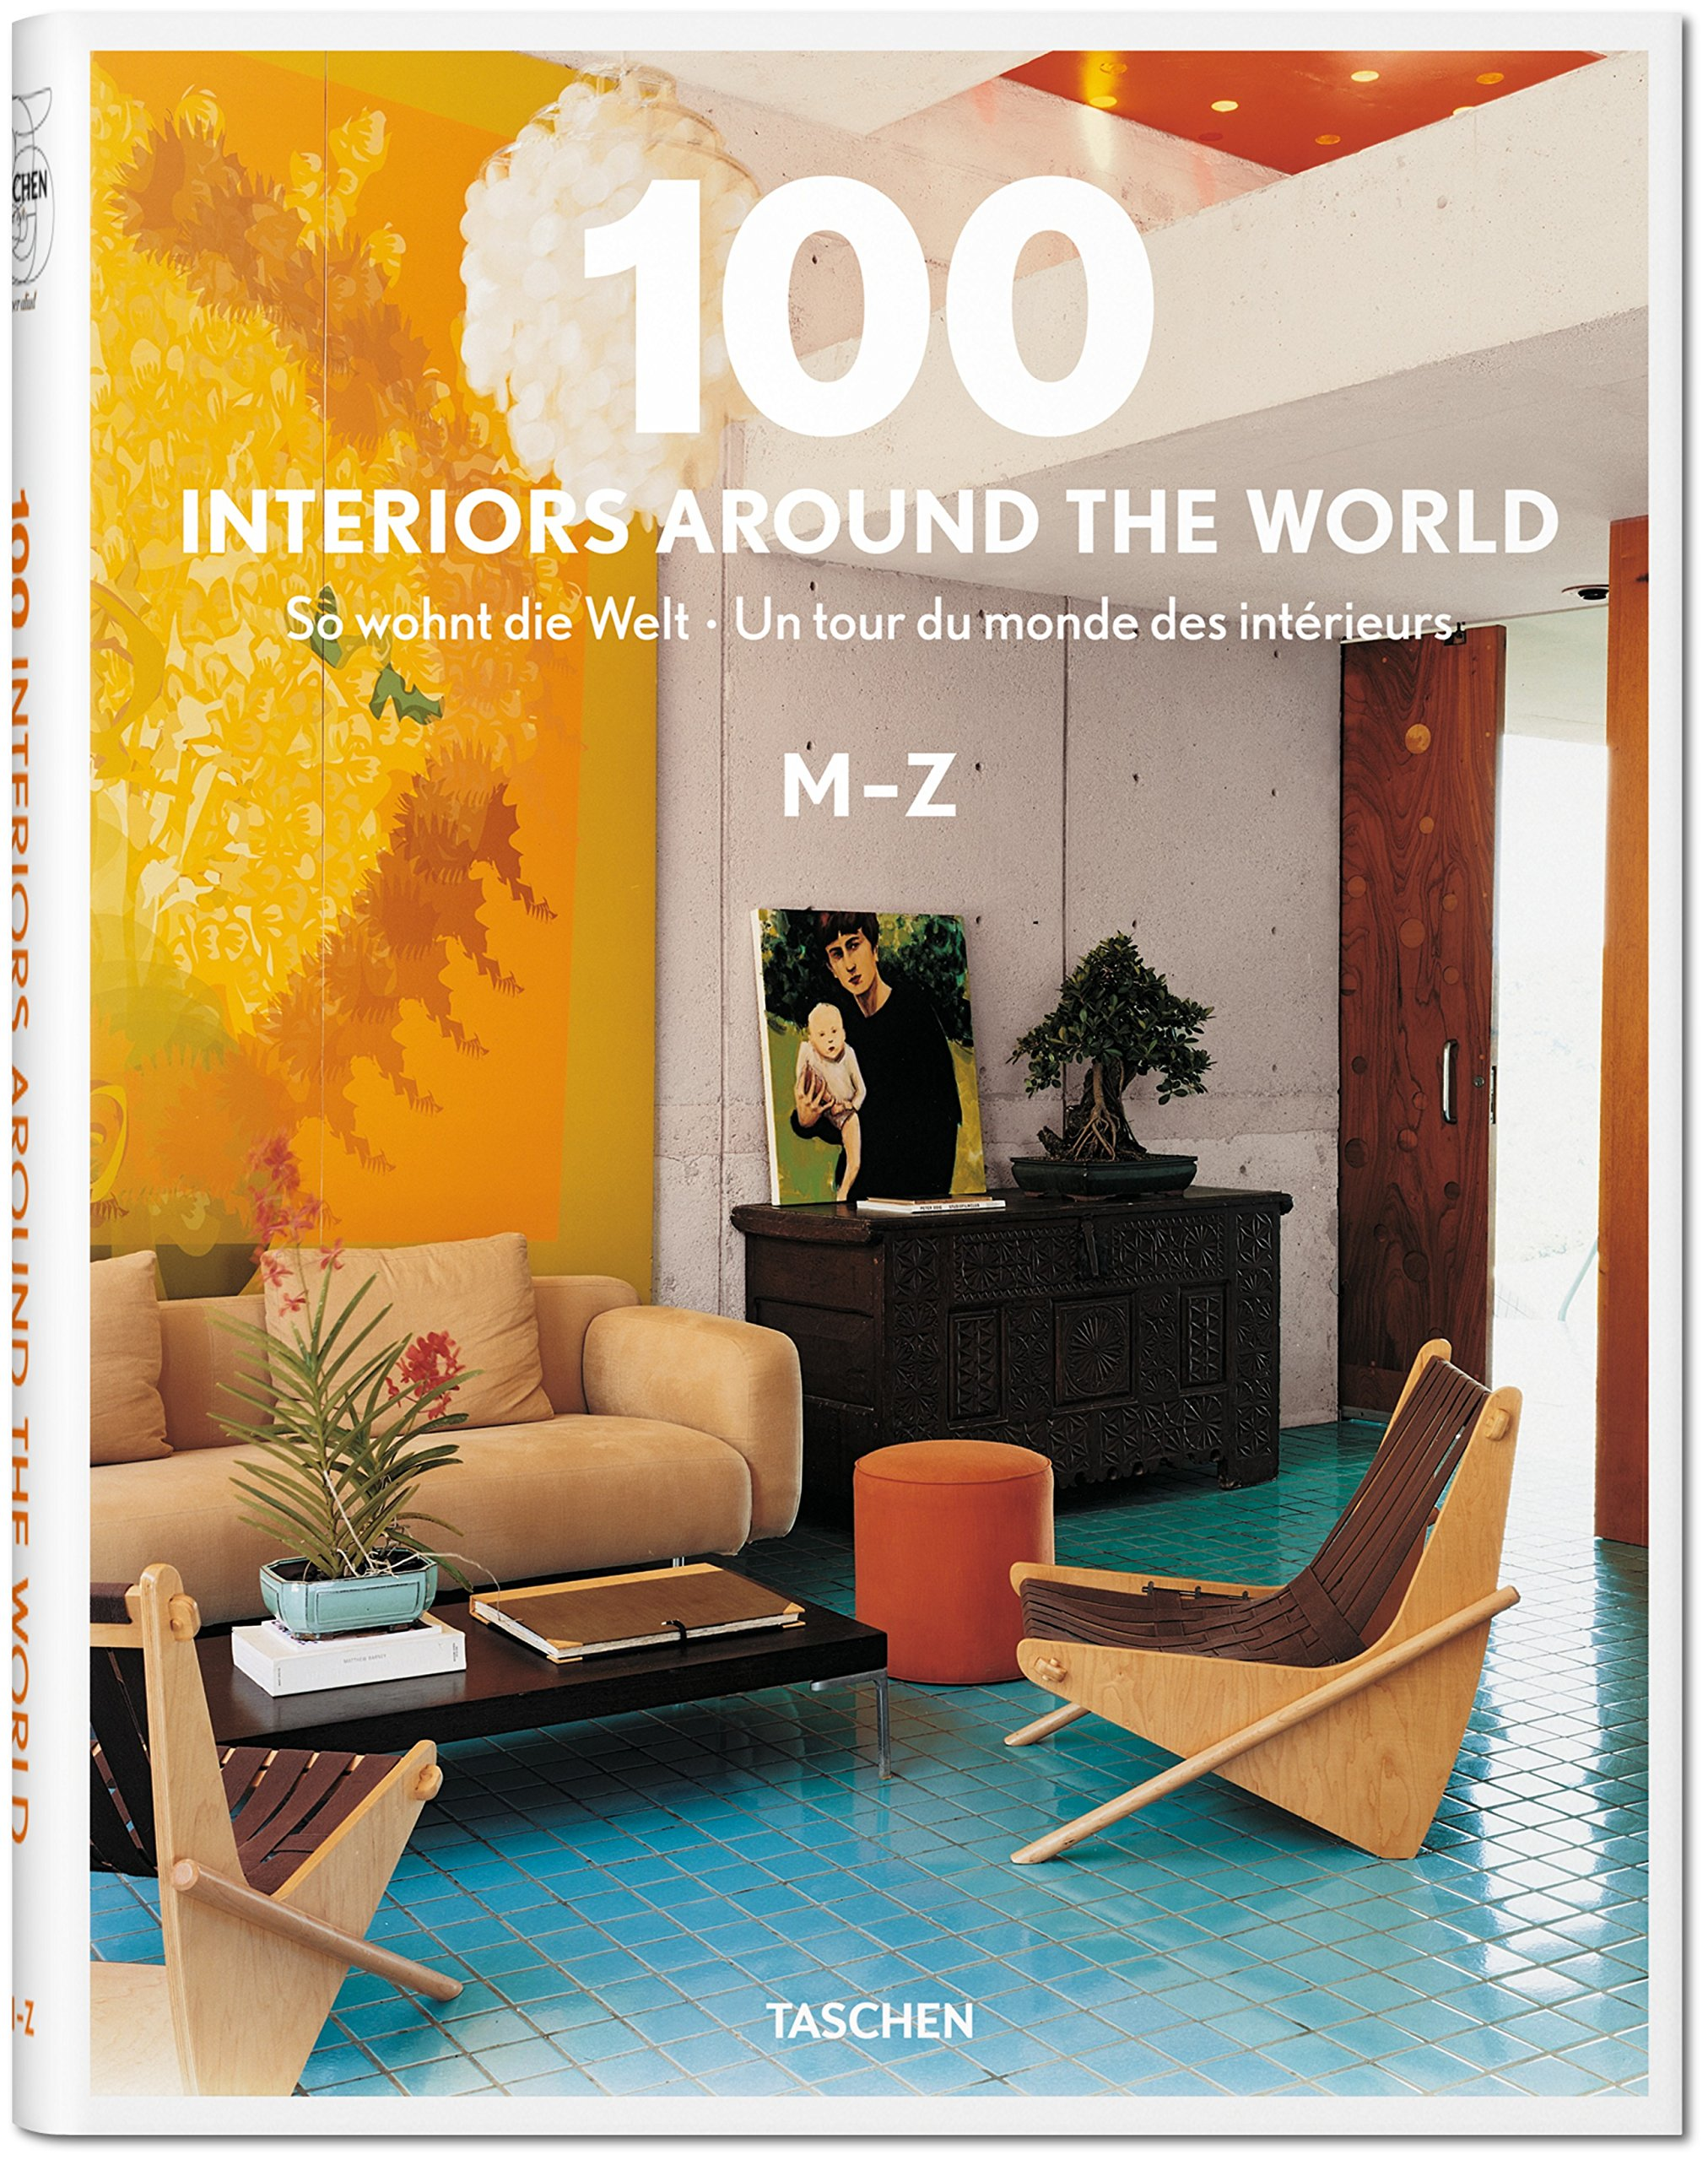 100 Interiors Around the World, 2 Vol. (English, French and German  Edition): TASCHEN Publishing: 9783836529884: Amazon.com: Books